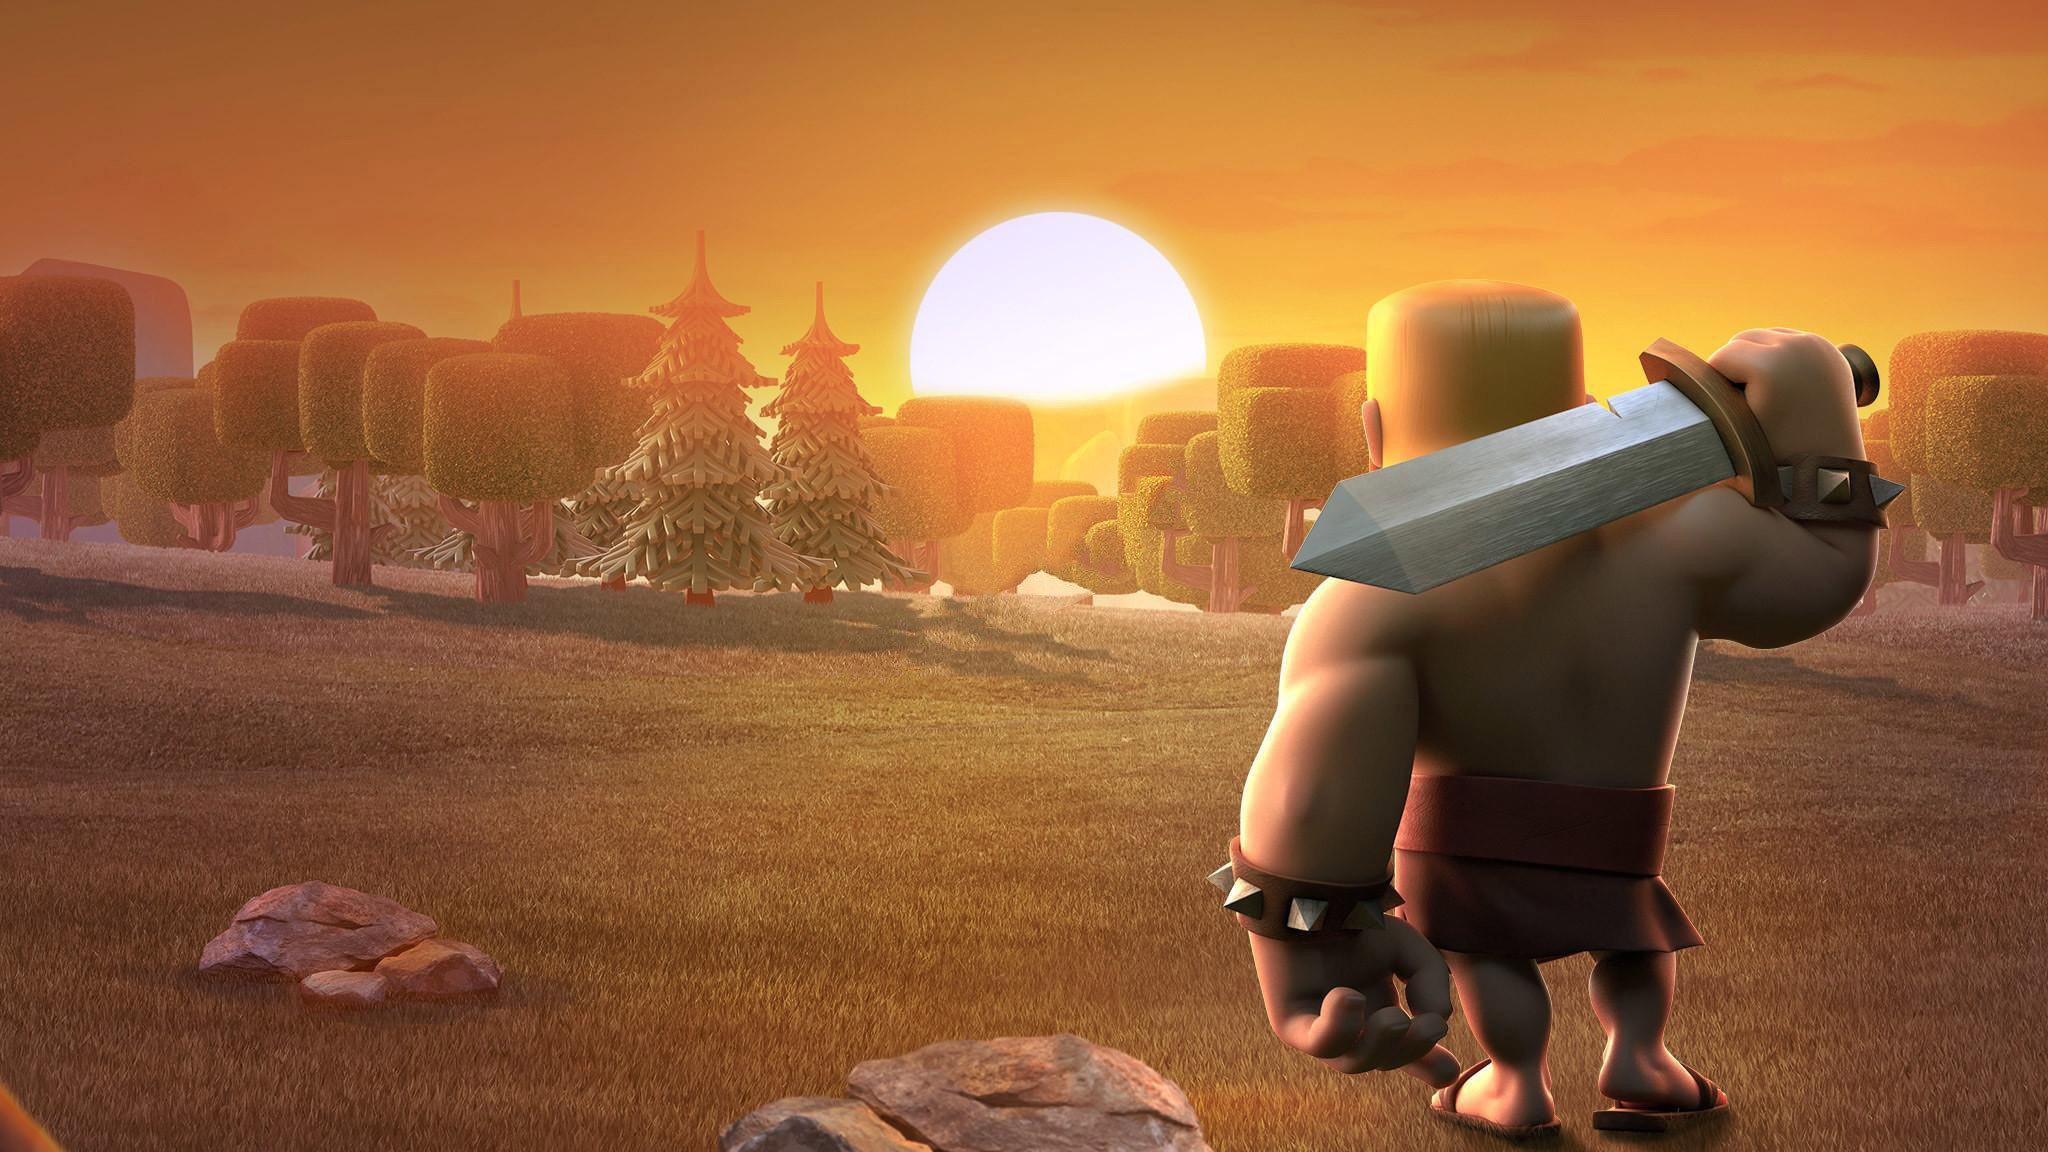 Barbarian Clash Of Clans Hd Hd Games 4k Wallpapers: 2048x1152 Barbarians Clash Of Clans 2048x1152 Resolution